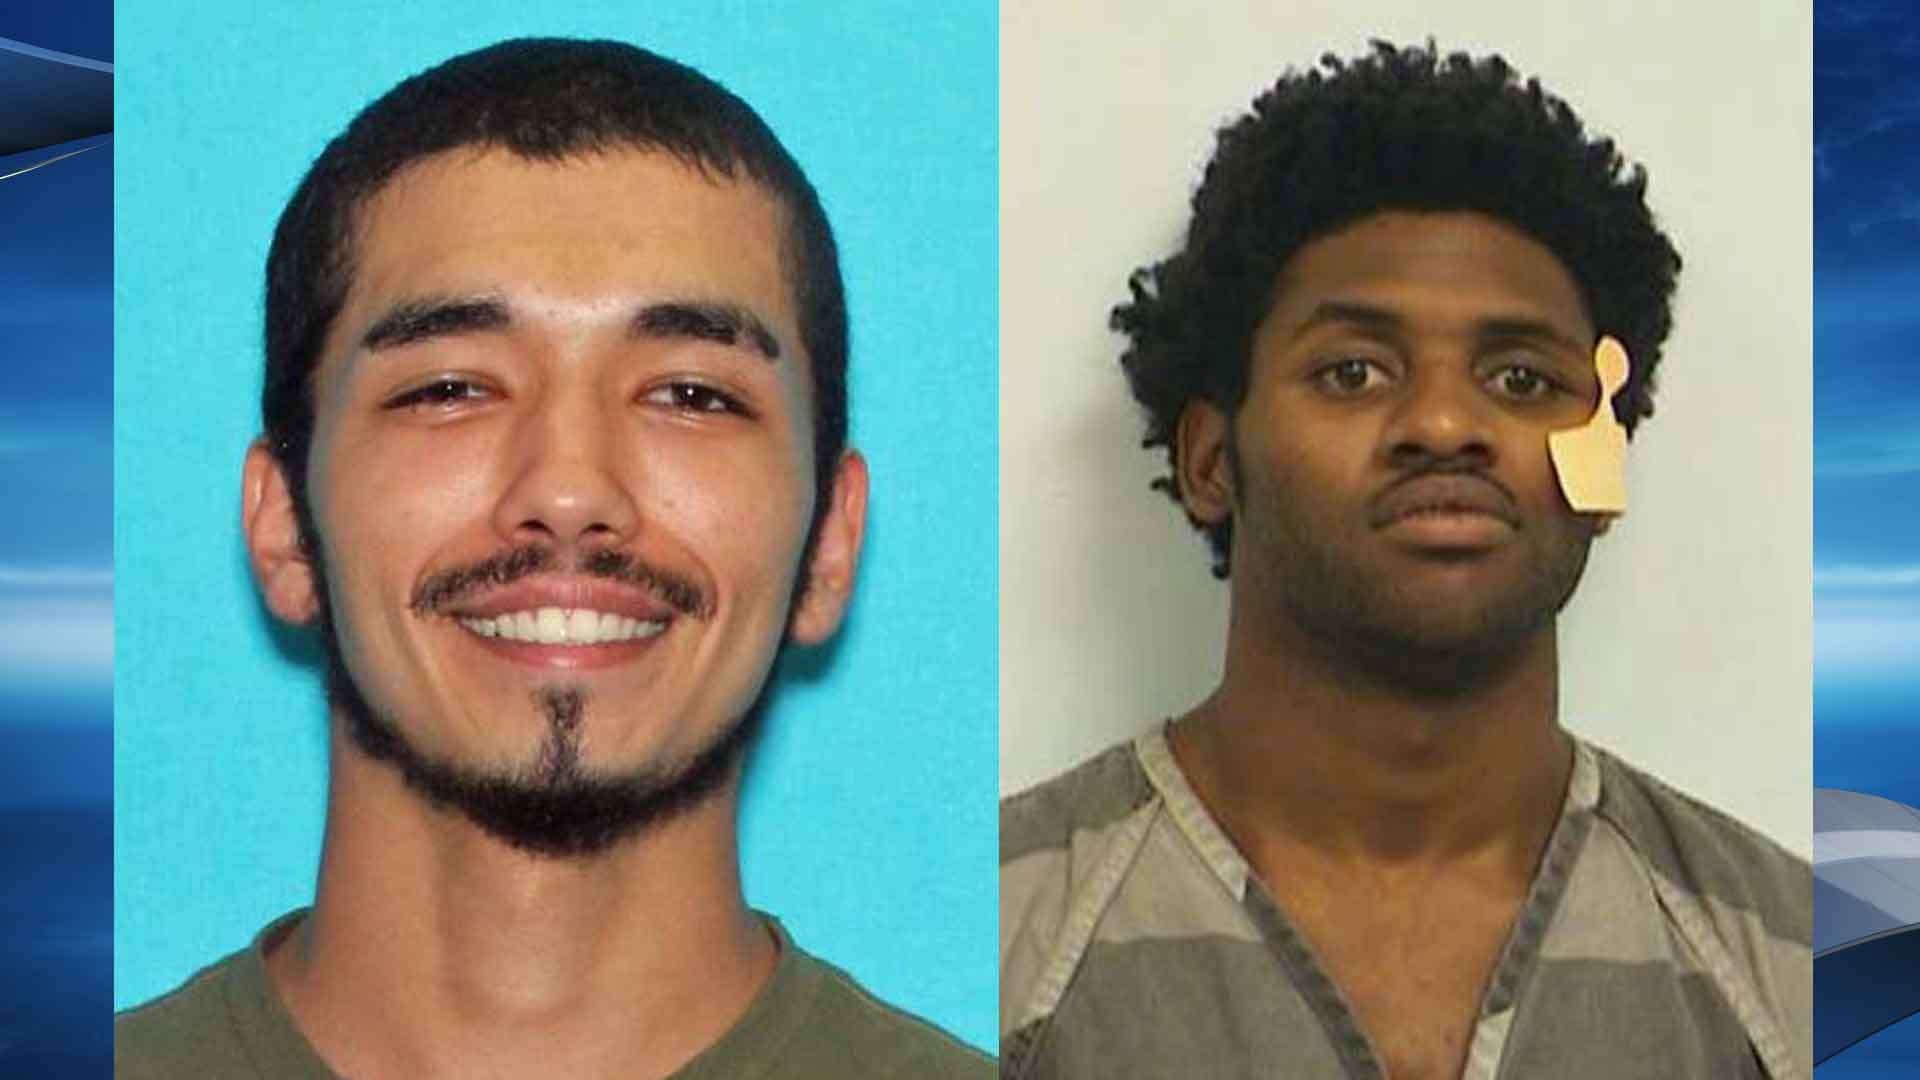 Investigators say Jordan Michael Rodriguez (pictured left), 20, of Bastrop, died early Thursday from a gunshot wound outside a home in southeast Travis County. Carrington Kazhean Waites (Pictured right), has been charged with tampering with evidence charge in connection to the case. (Photos courtesy: Travis County Sheriff's Office)